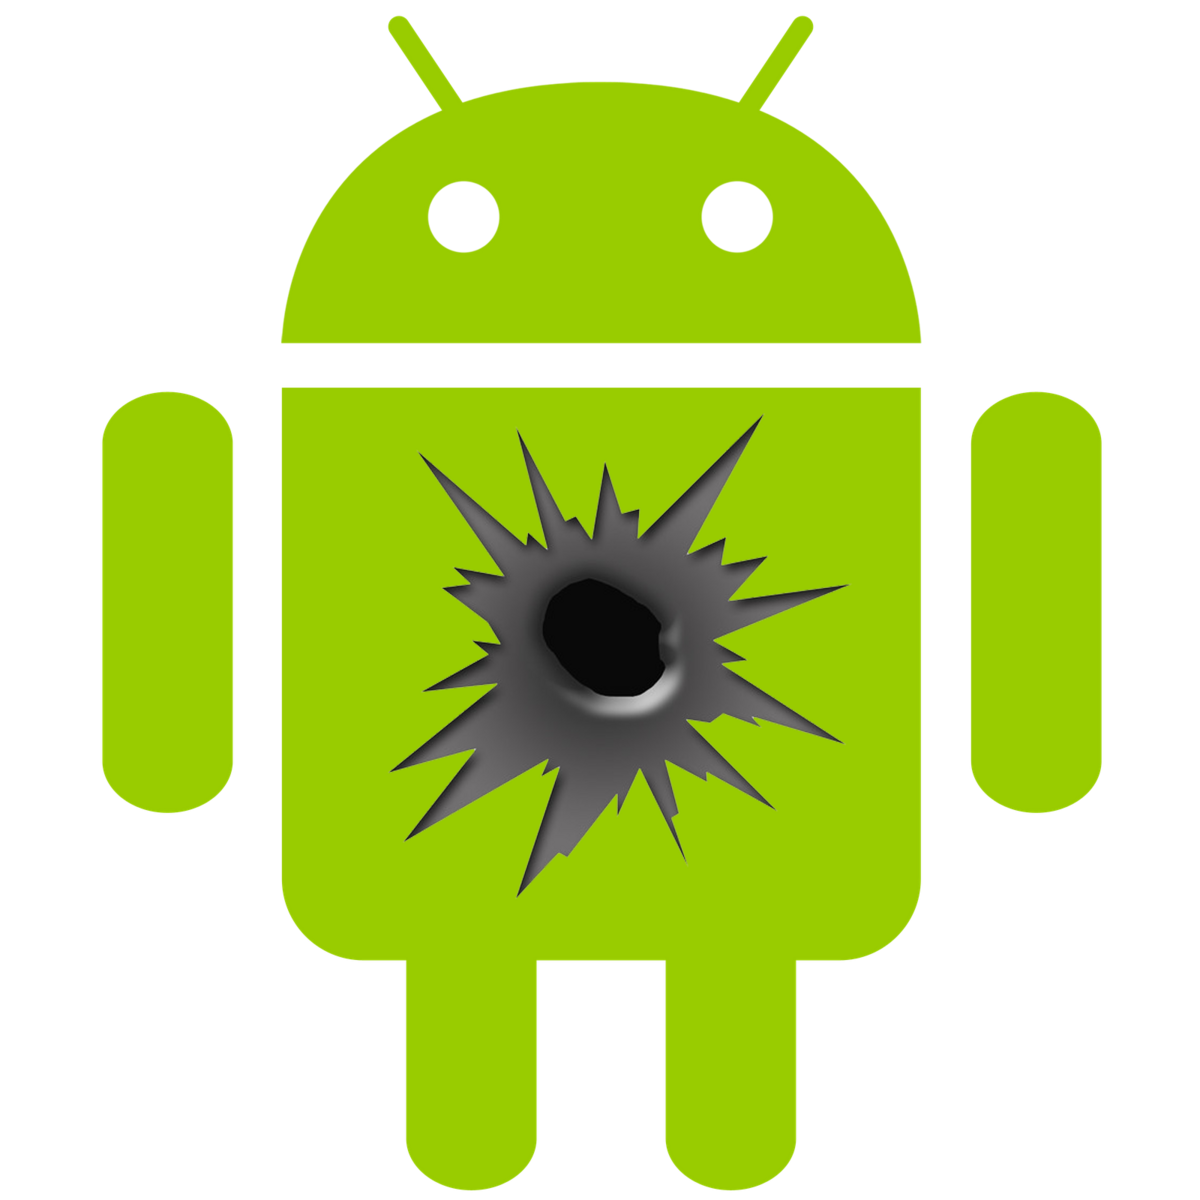 Major security vulnerability discovered in Android devices.